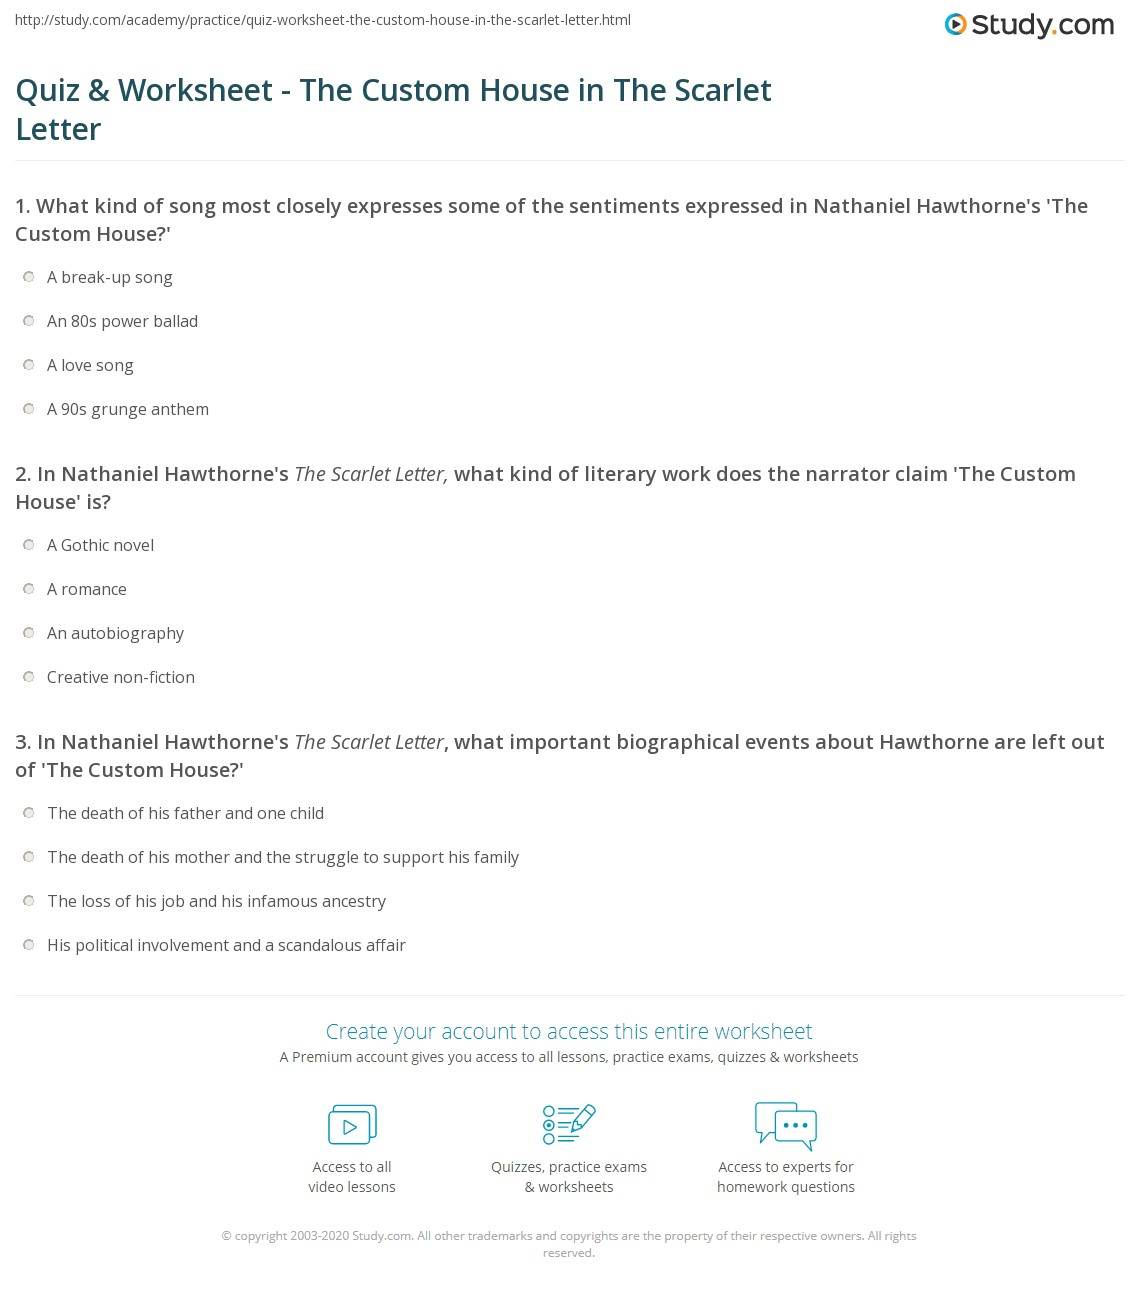 Quiz & Worksheet   The Custom House in The Scarlet Letter | Study.com